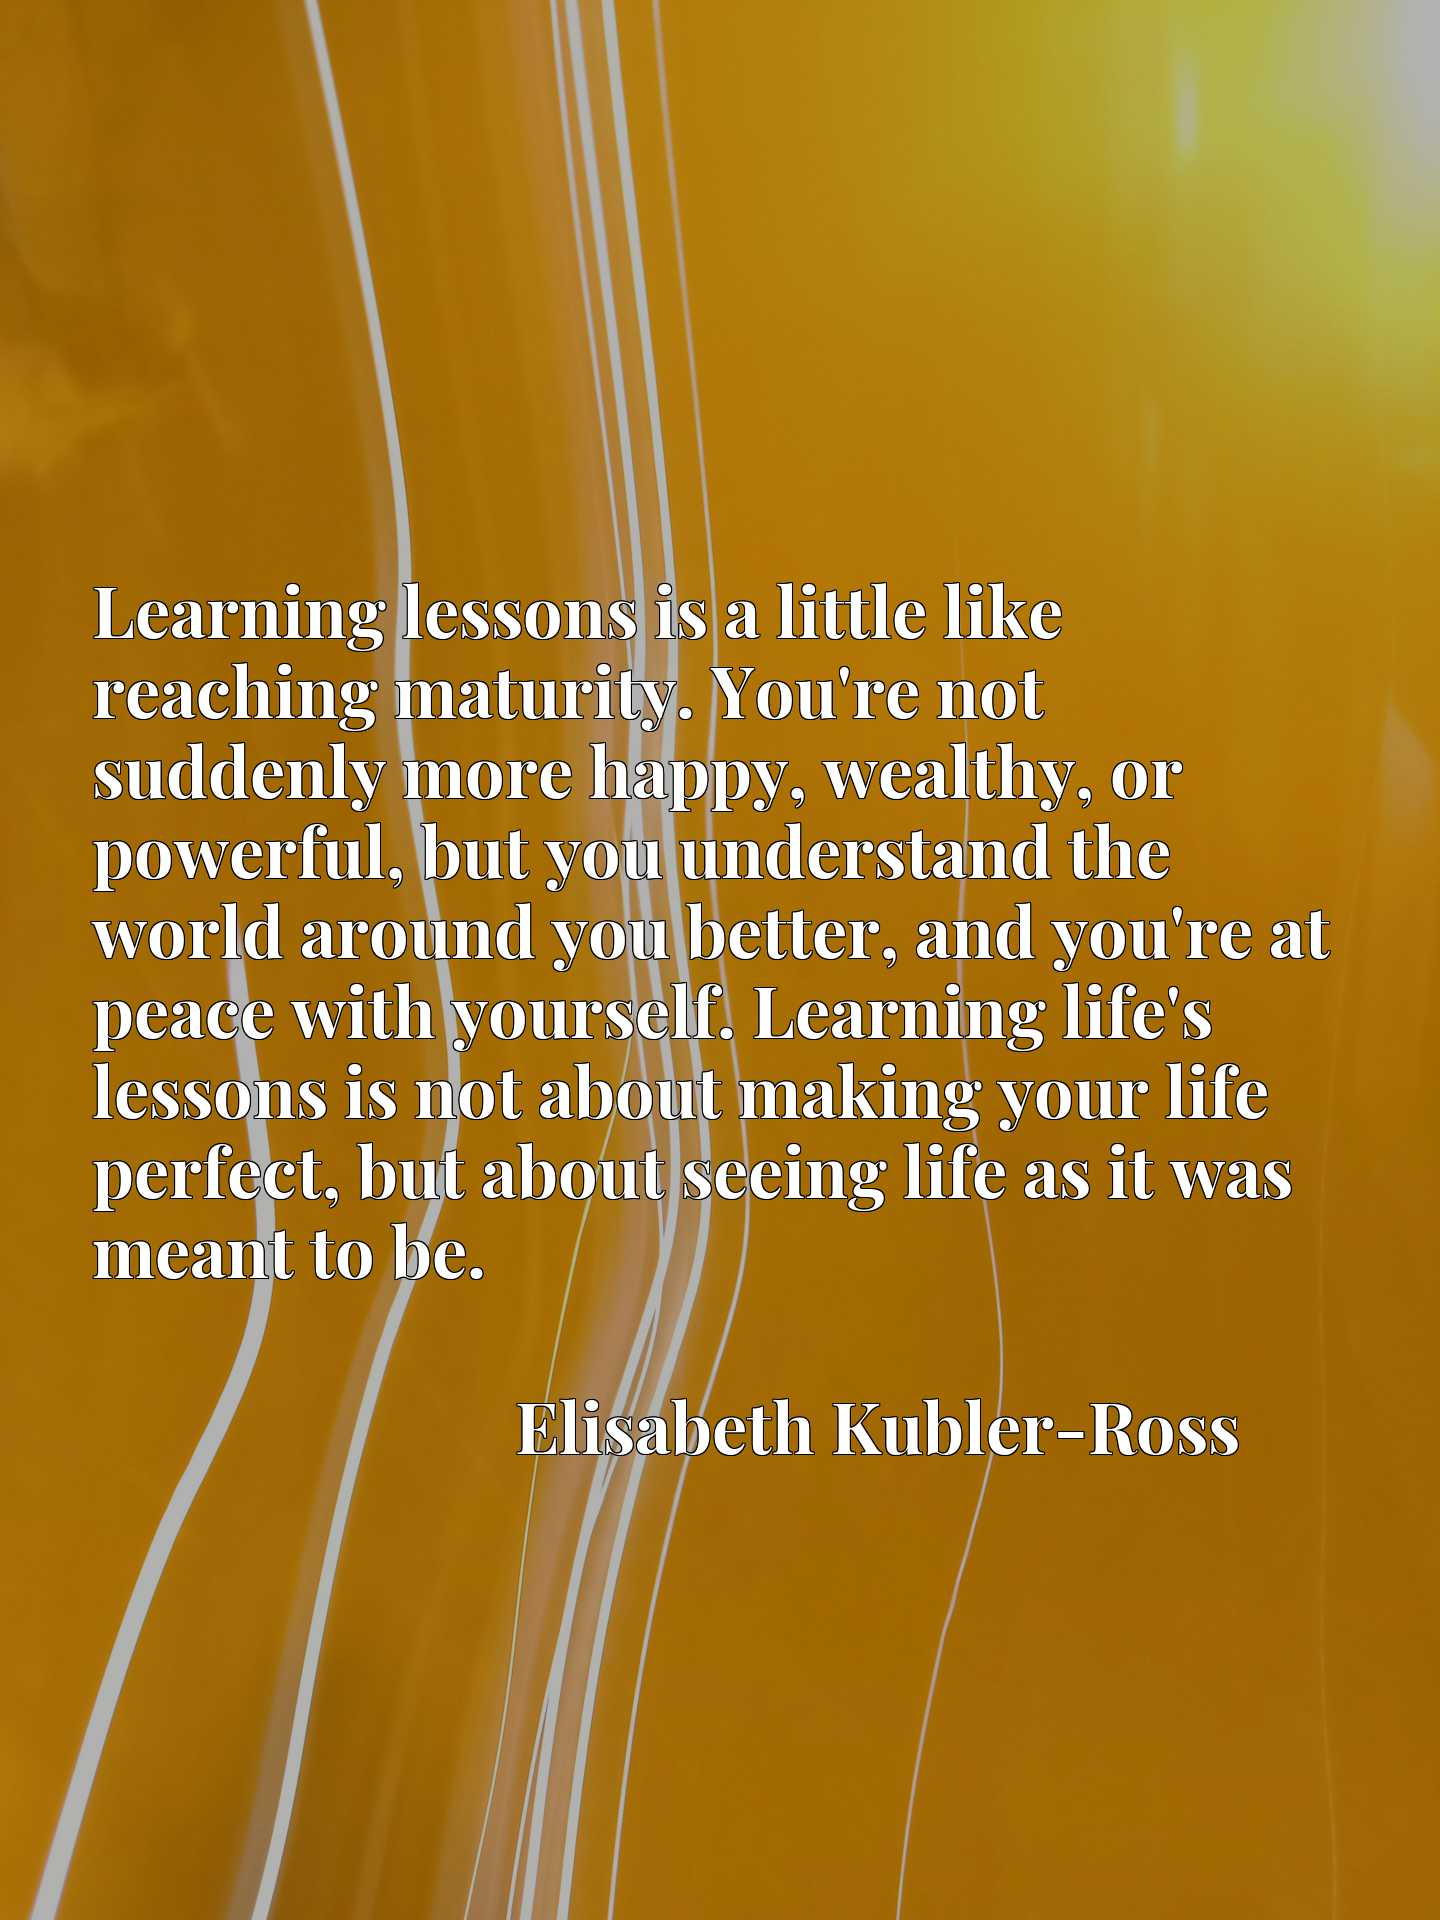 Learning lessons is a little like reaching maturity. You're not suddenly more happy, wealthy, or powerful, but you understand the world around you better, and you're at peace with yourself. Learning life's lessons is not about making your life perfect, but about seeing life as it was meant to be.